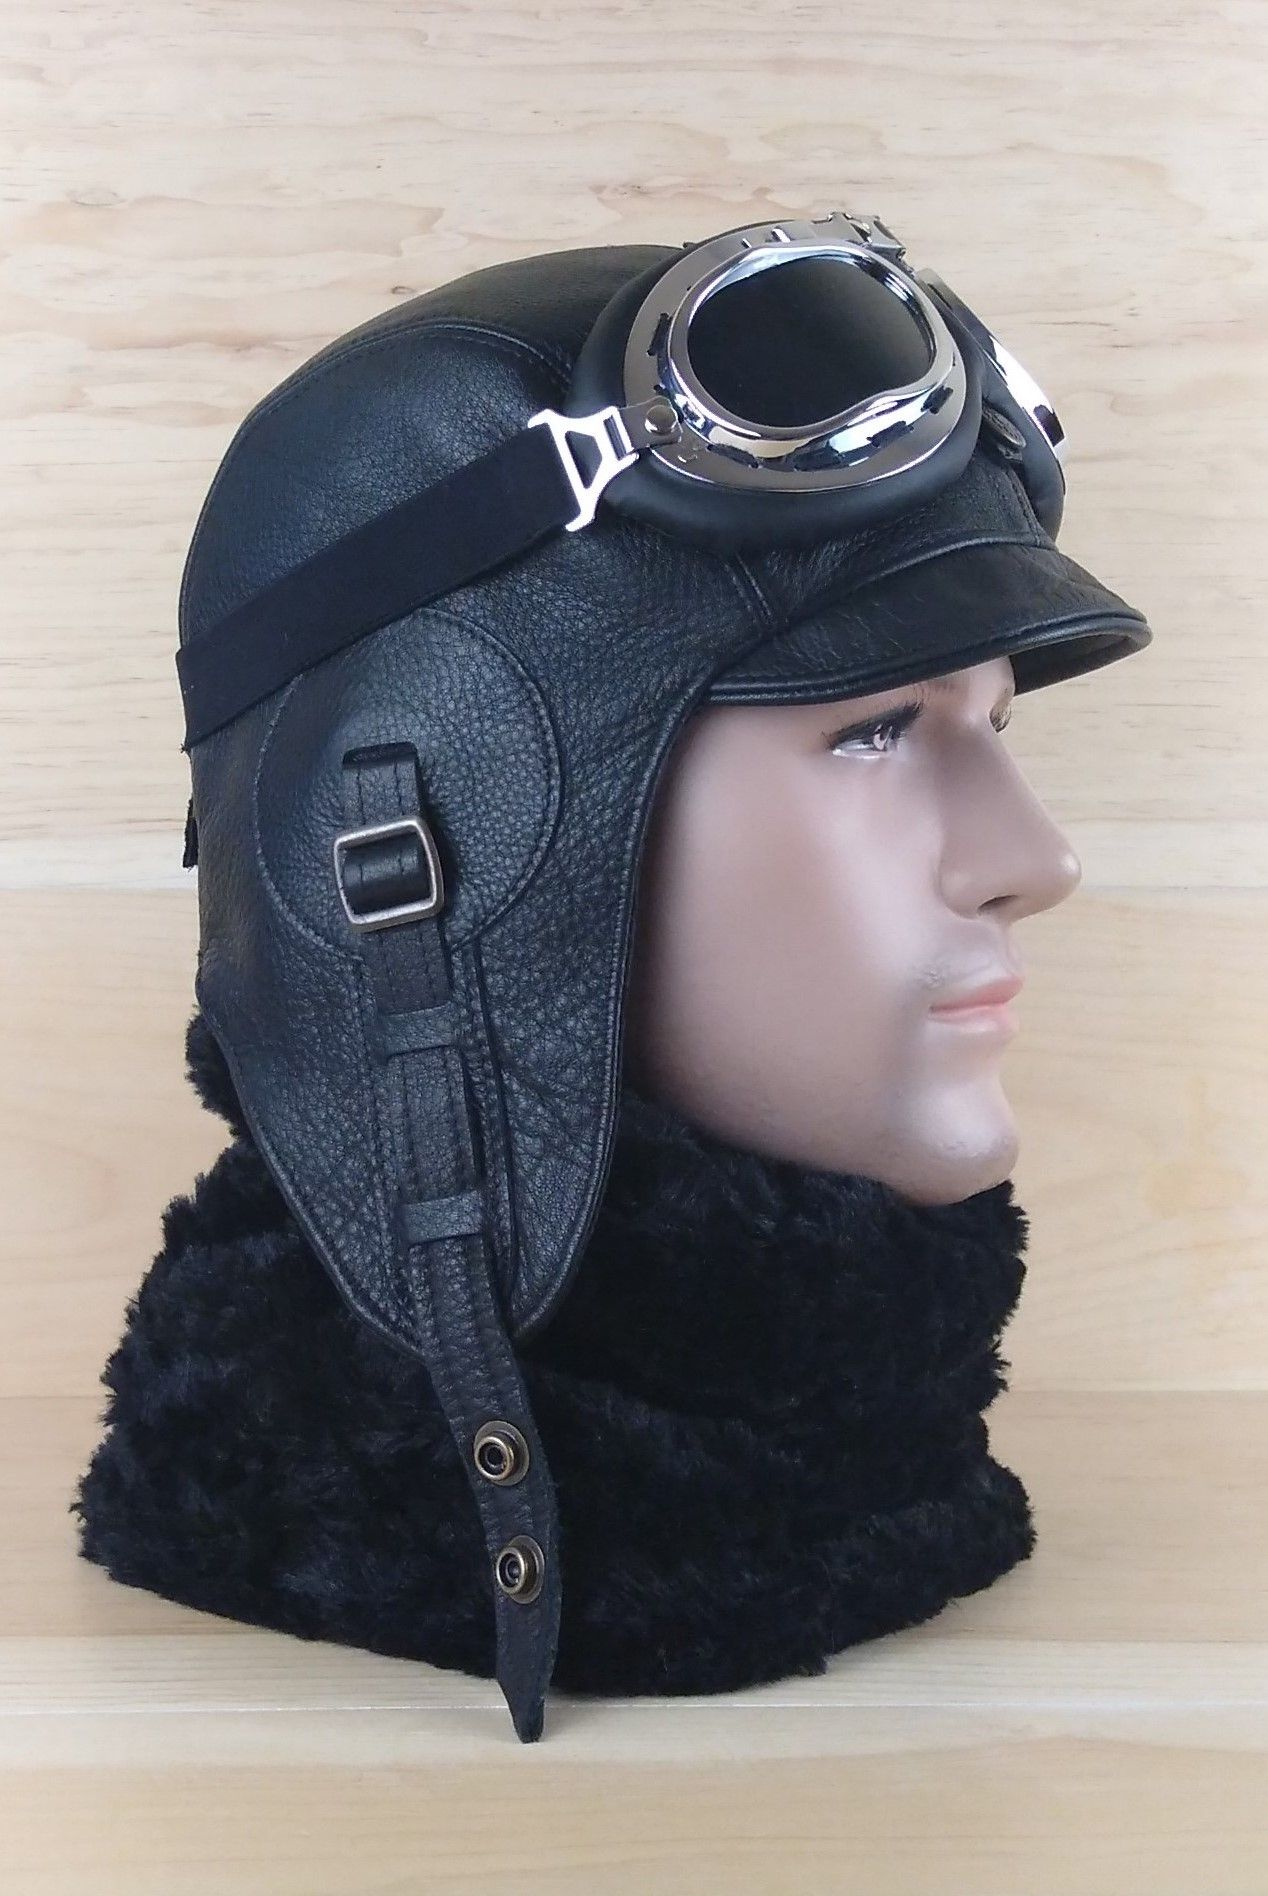 Pilot Style Motorcycle Helmet : pilot, style, motorcycle, helmet, Leather, Aviator, Motorcycle, Helmet, Pilot, Military, Style, Steampunk, Aviation, Goggles,, Black, Leather,